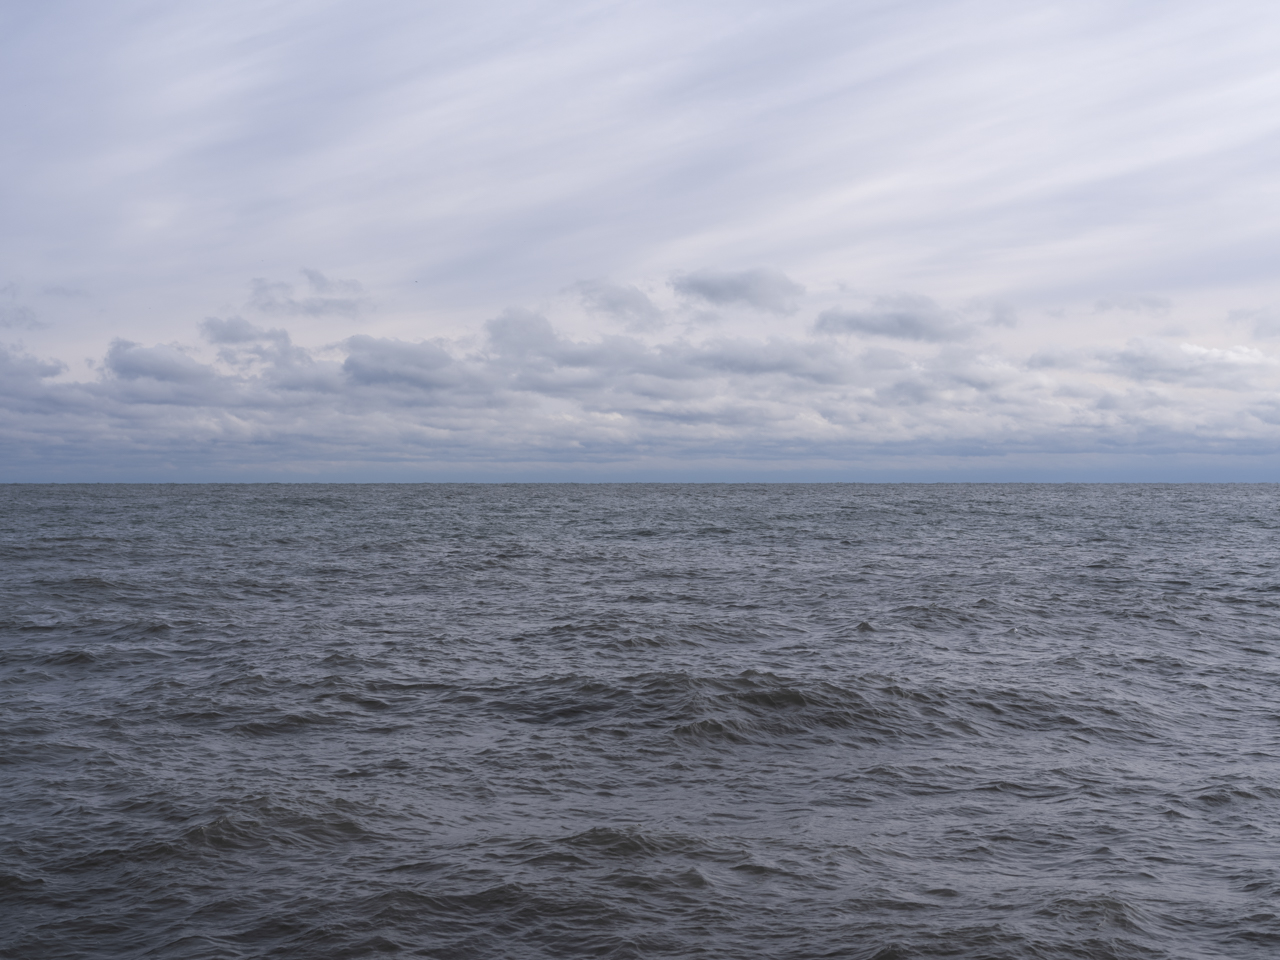 a cloudy day on lake michigan with blue tones and slight waves